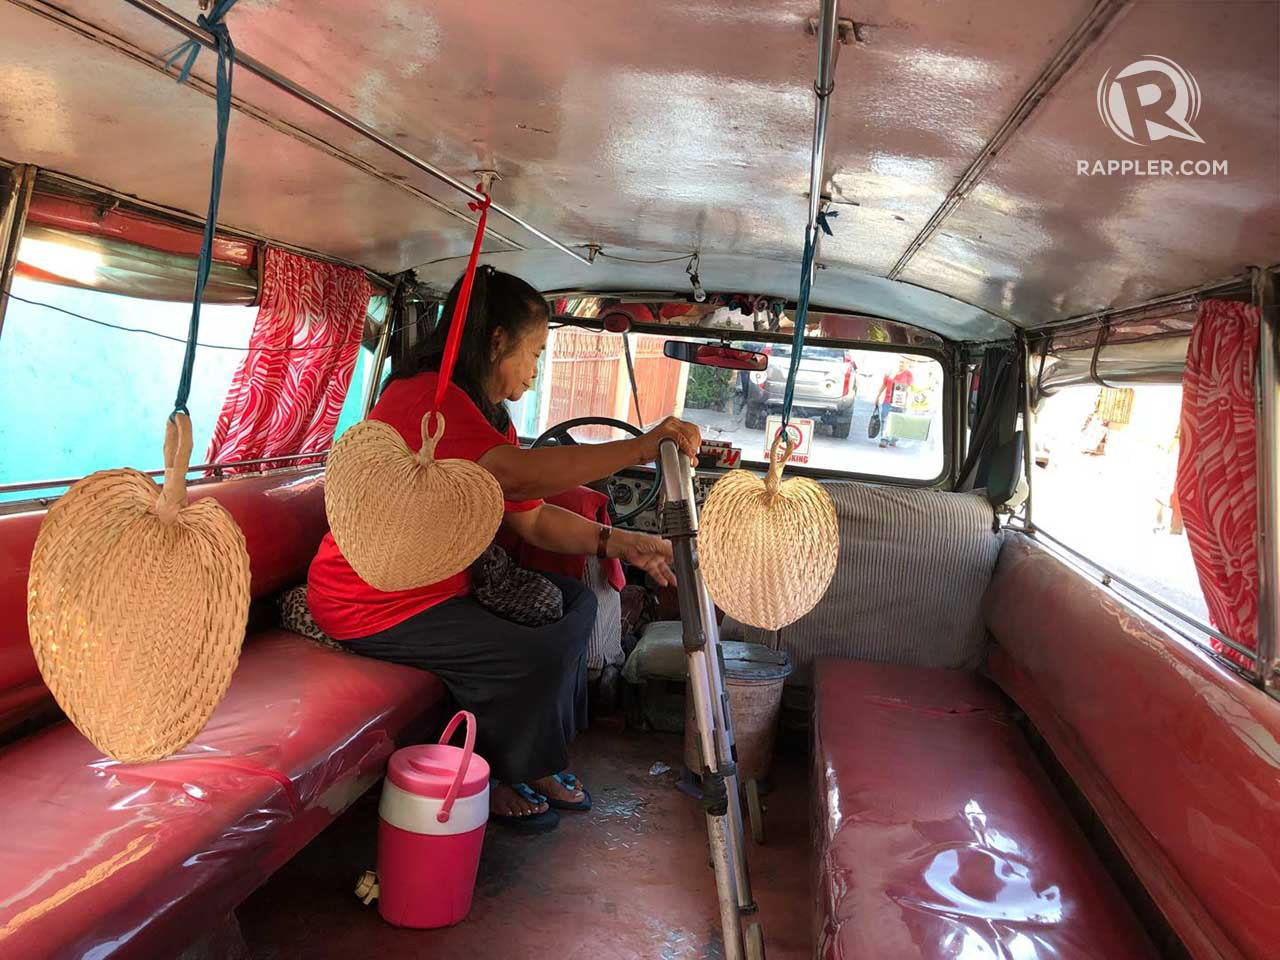 BEATING THE HEAT. Hand fans are seen hanging from the ceiling of Rene's jeepney.